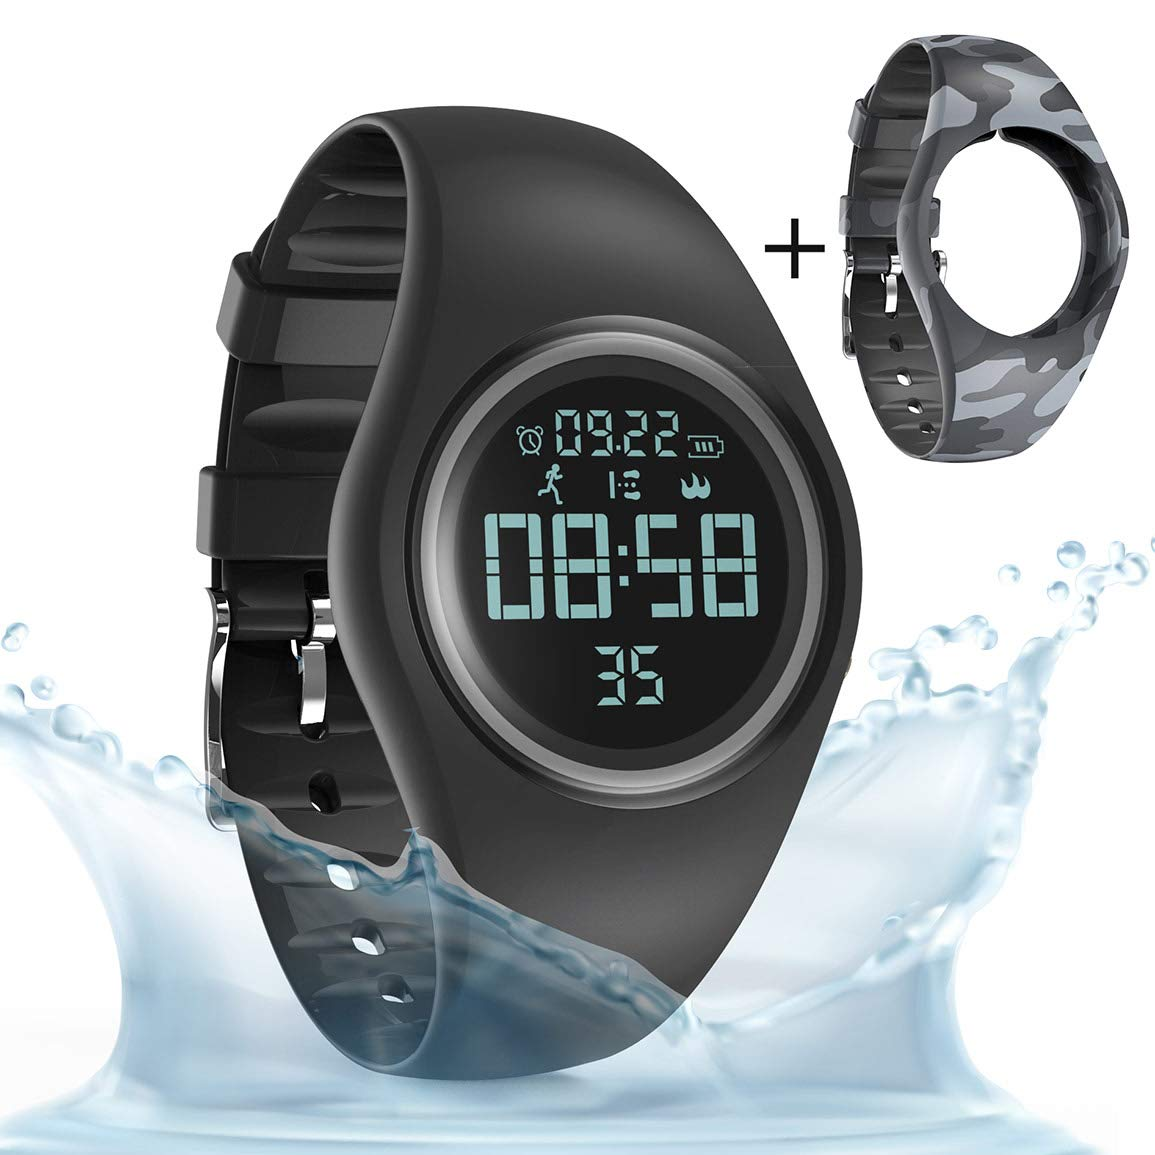 synwee Sports Fitness Tracker Watch,IP68 Waterproof, Non-Bluetooth, with Pedometer/Vibration Alarm Clock/Timer, for Kid Children Teen Boys Girls (Black) ¡ by synwee